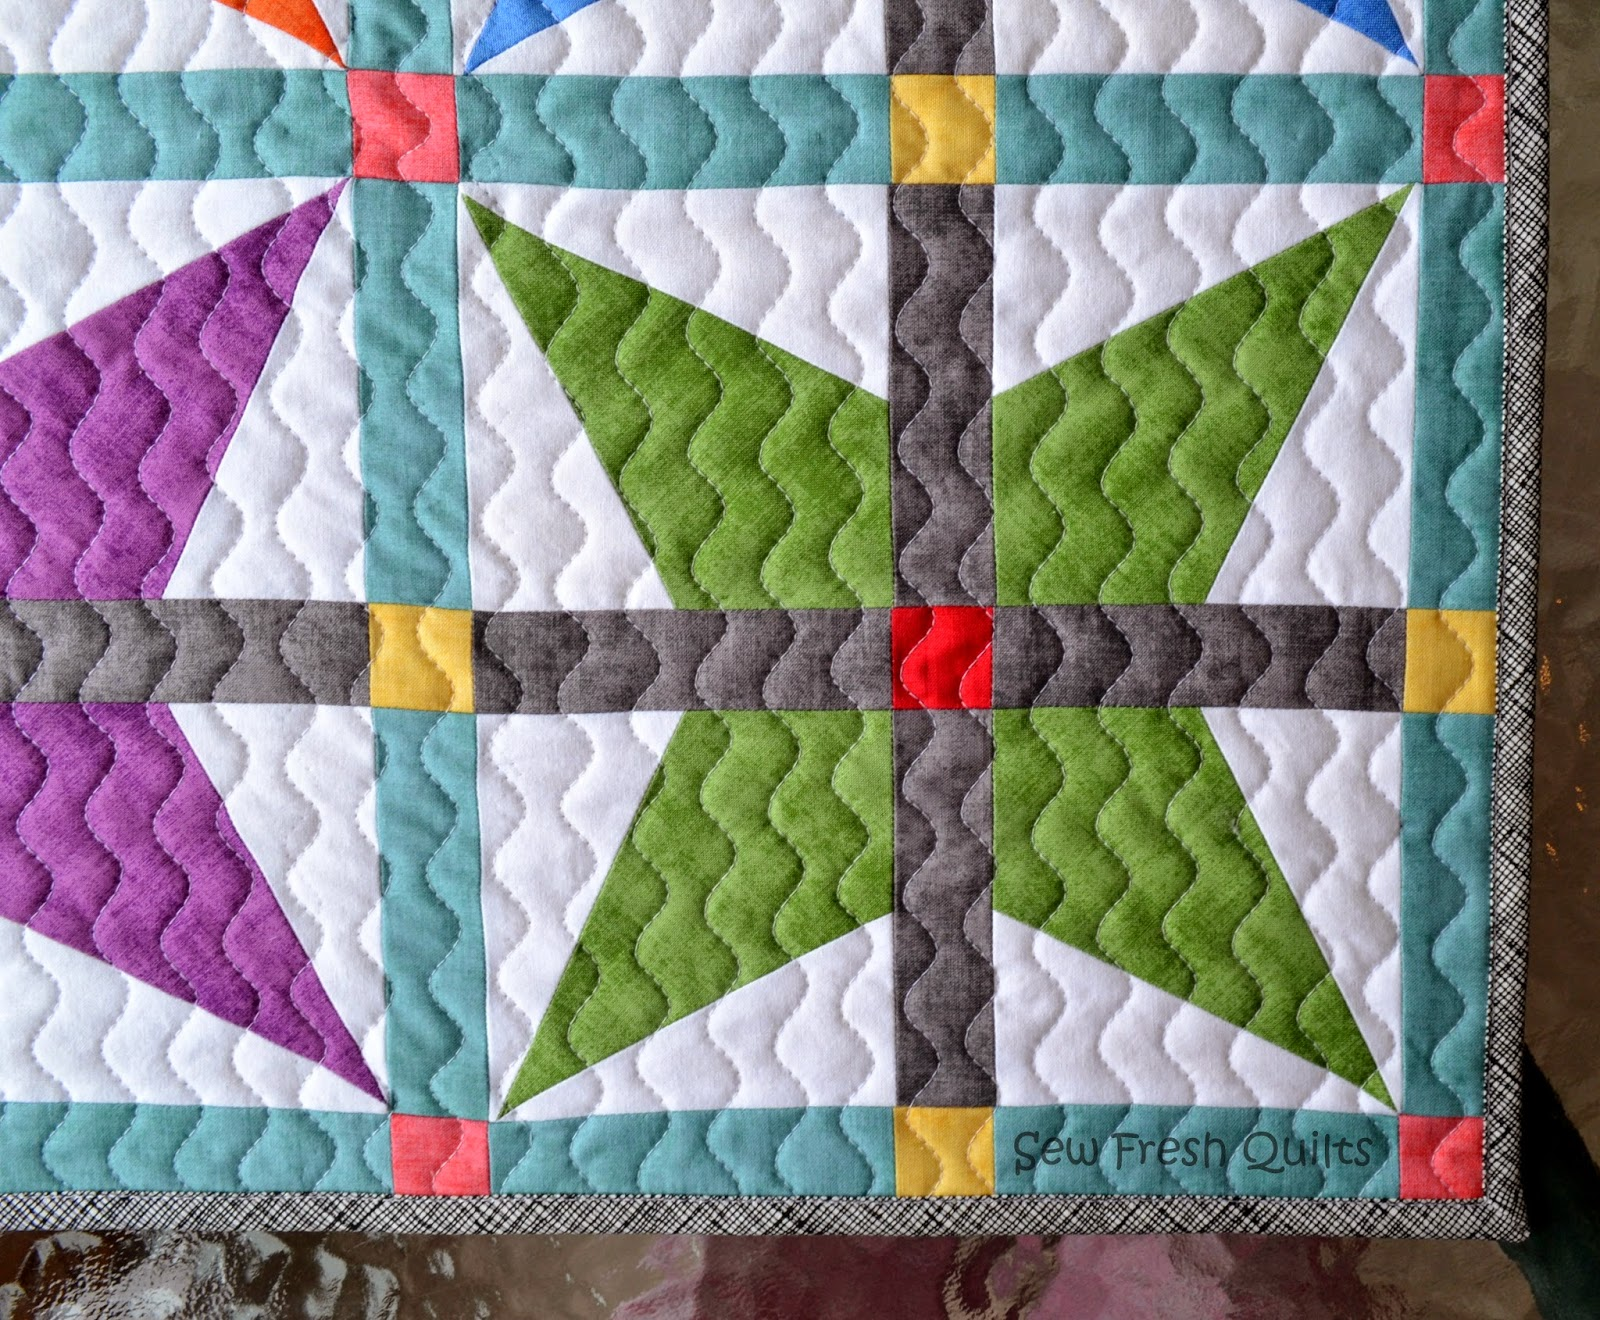 Quilting Patterns Using Walking Foot : Sew Fresh Quilts: Top 10 Tips for New Quilters - Quilting with your Walking Foot